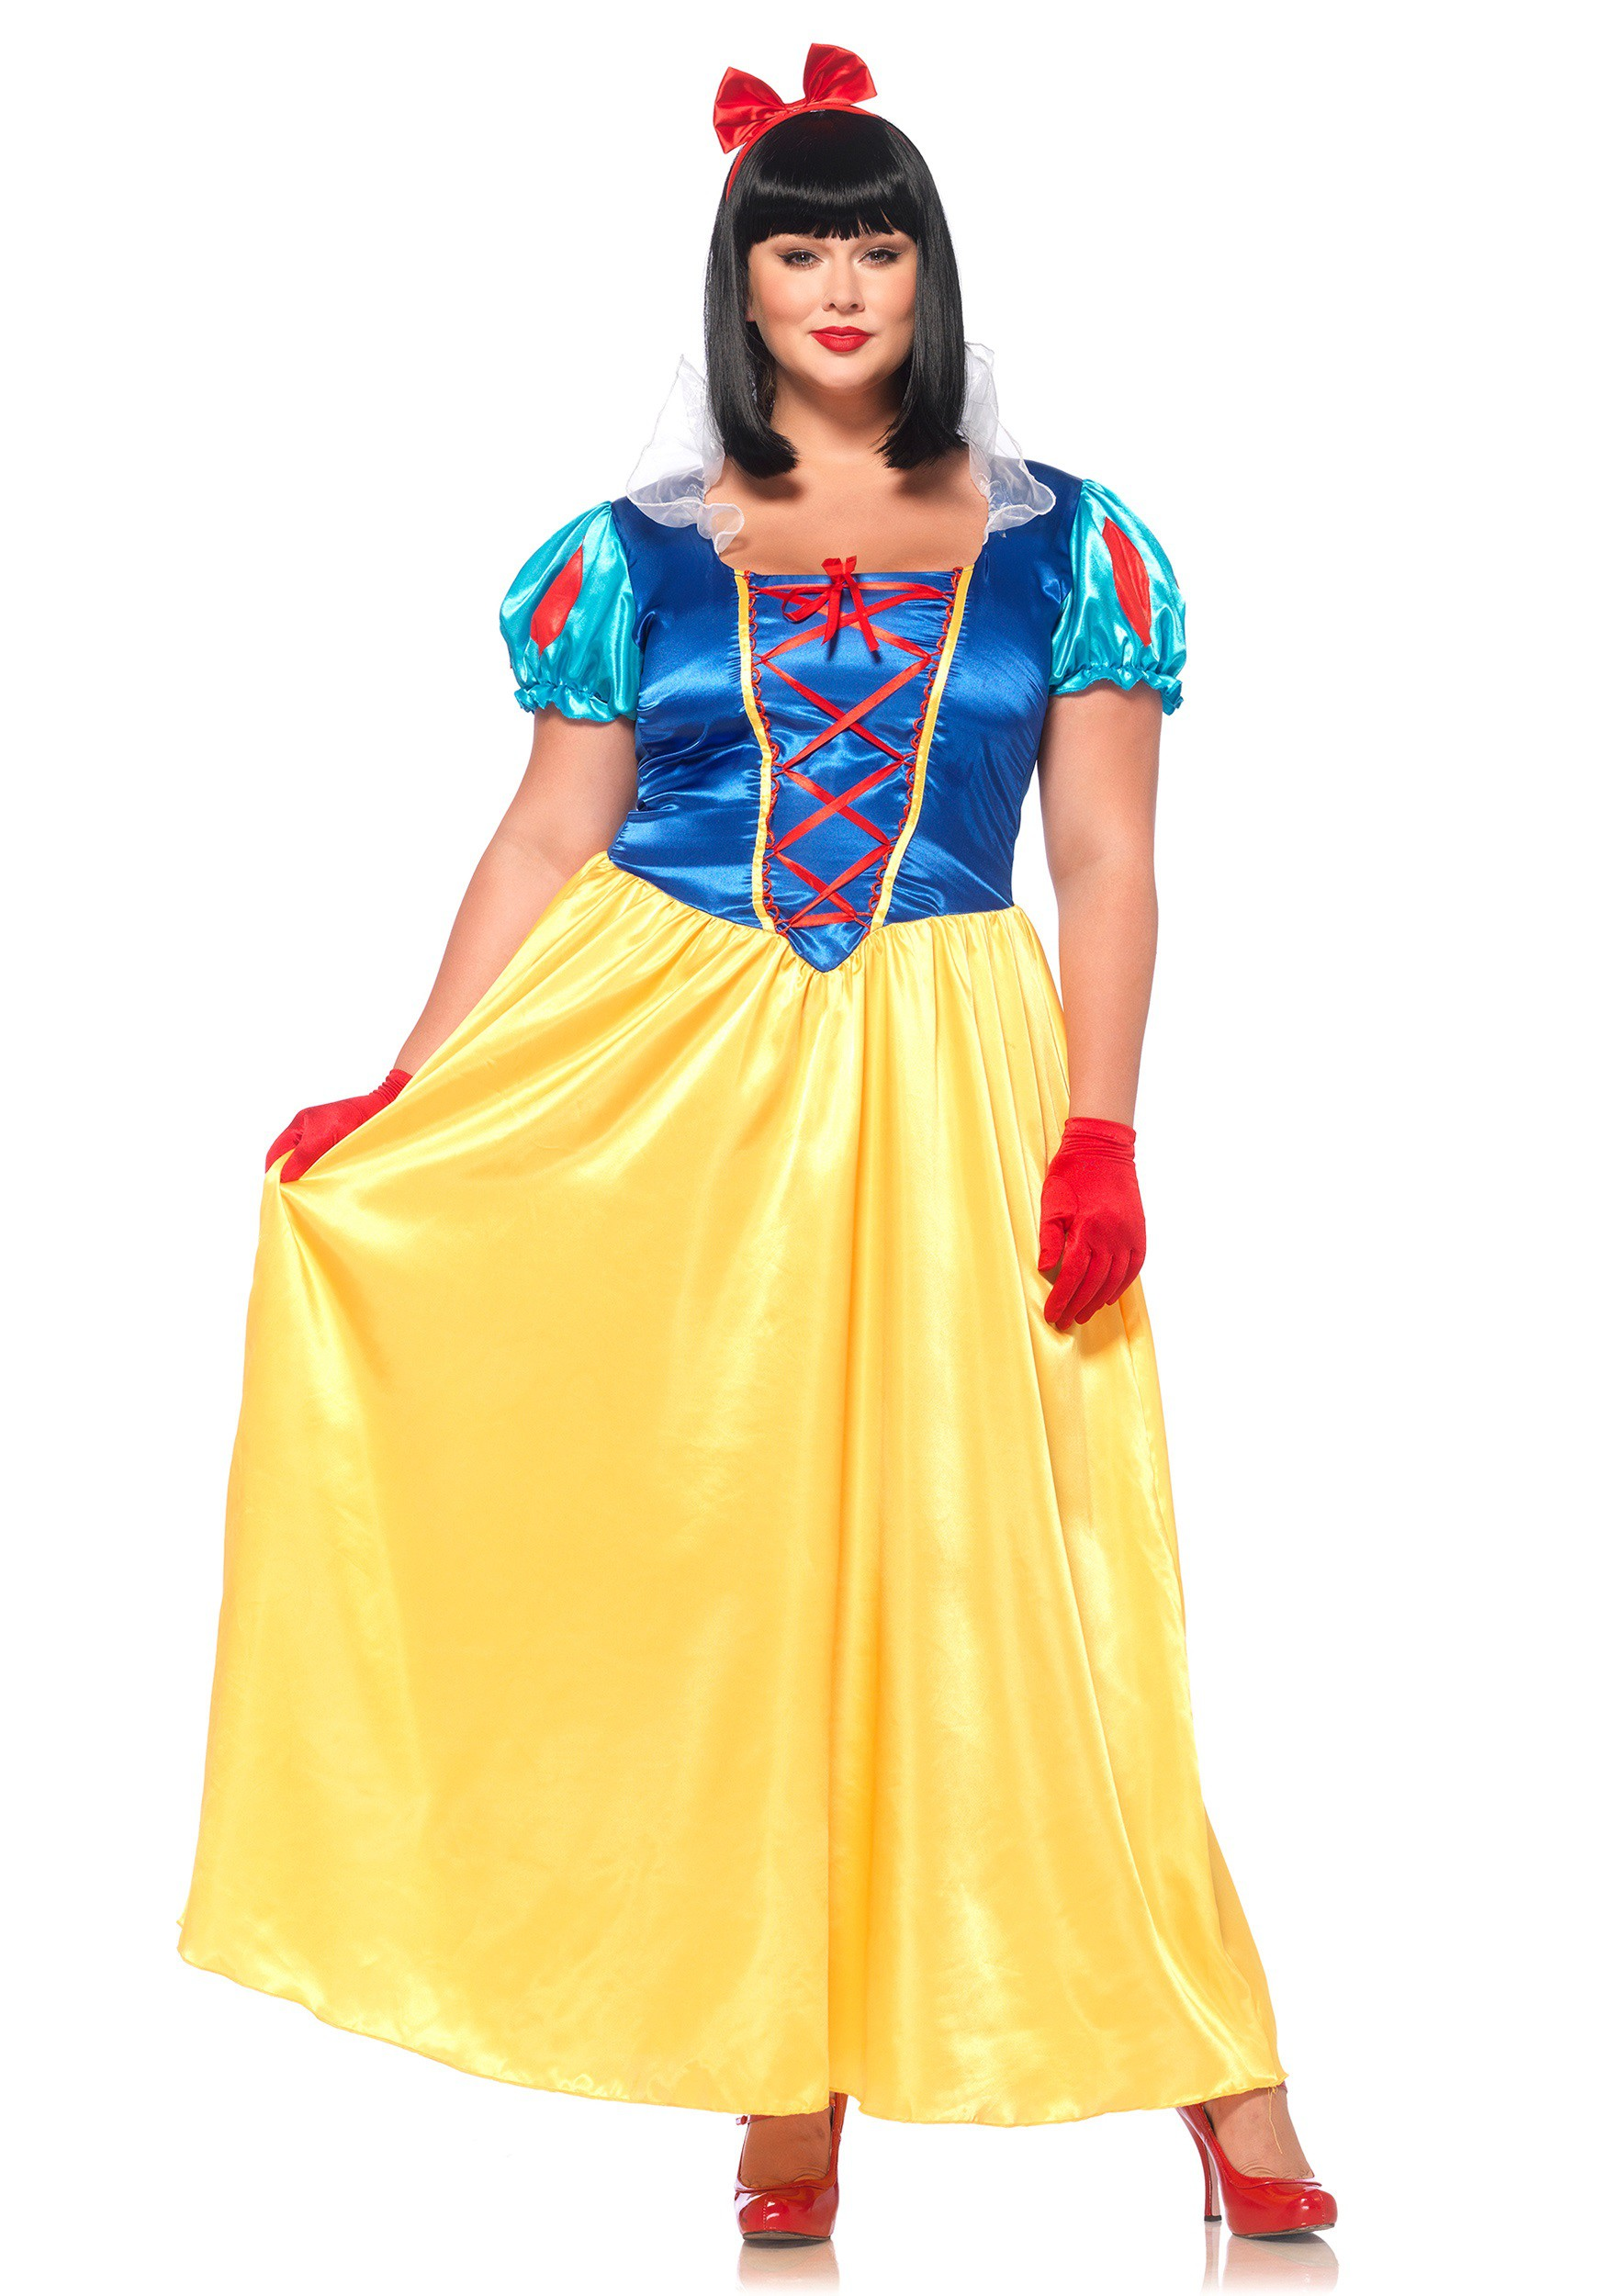 Classic Snow White Plus Size Costume for Women | Exclusive